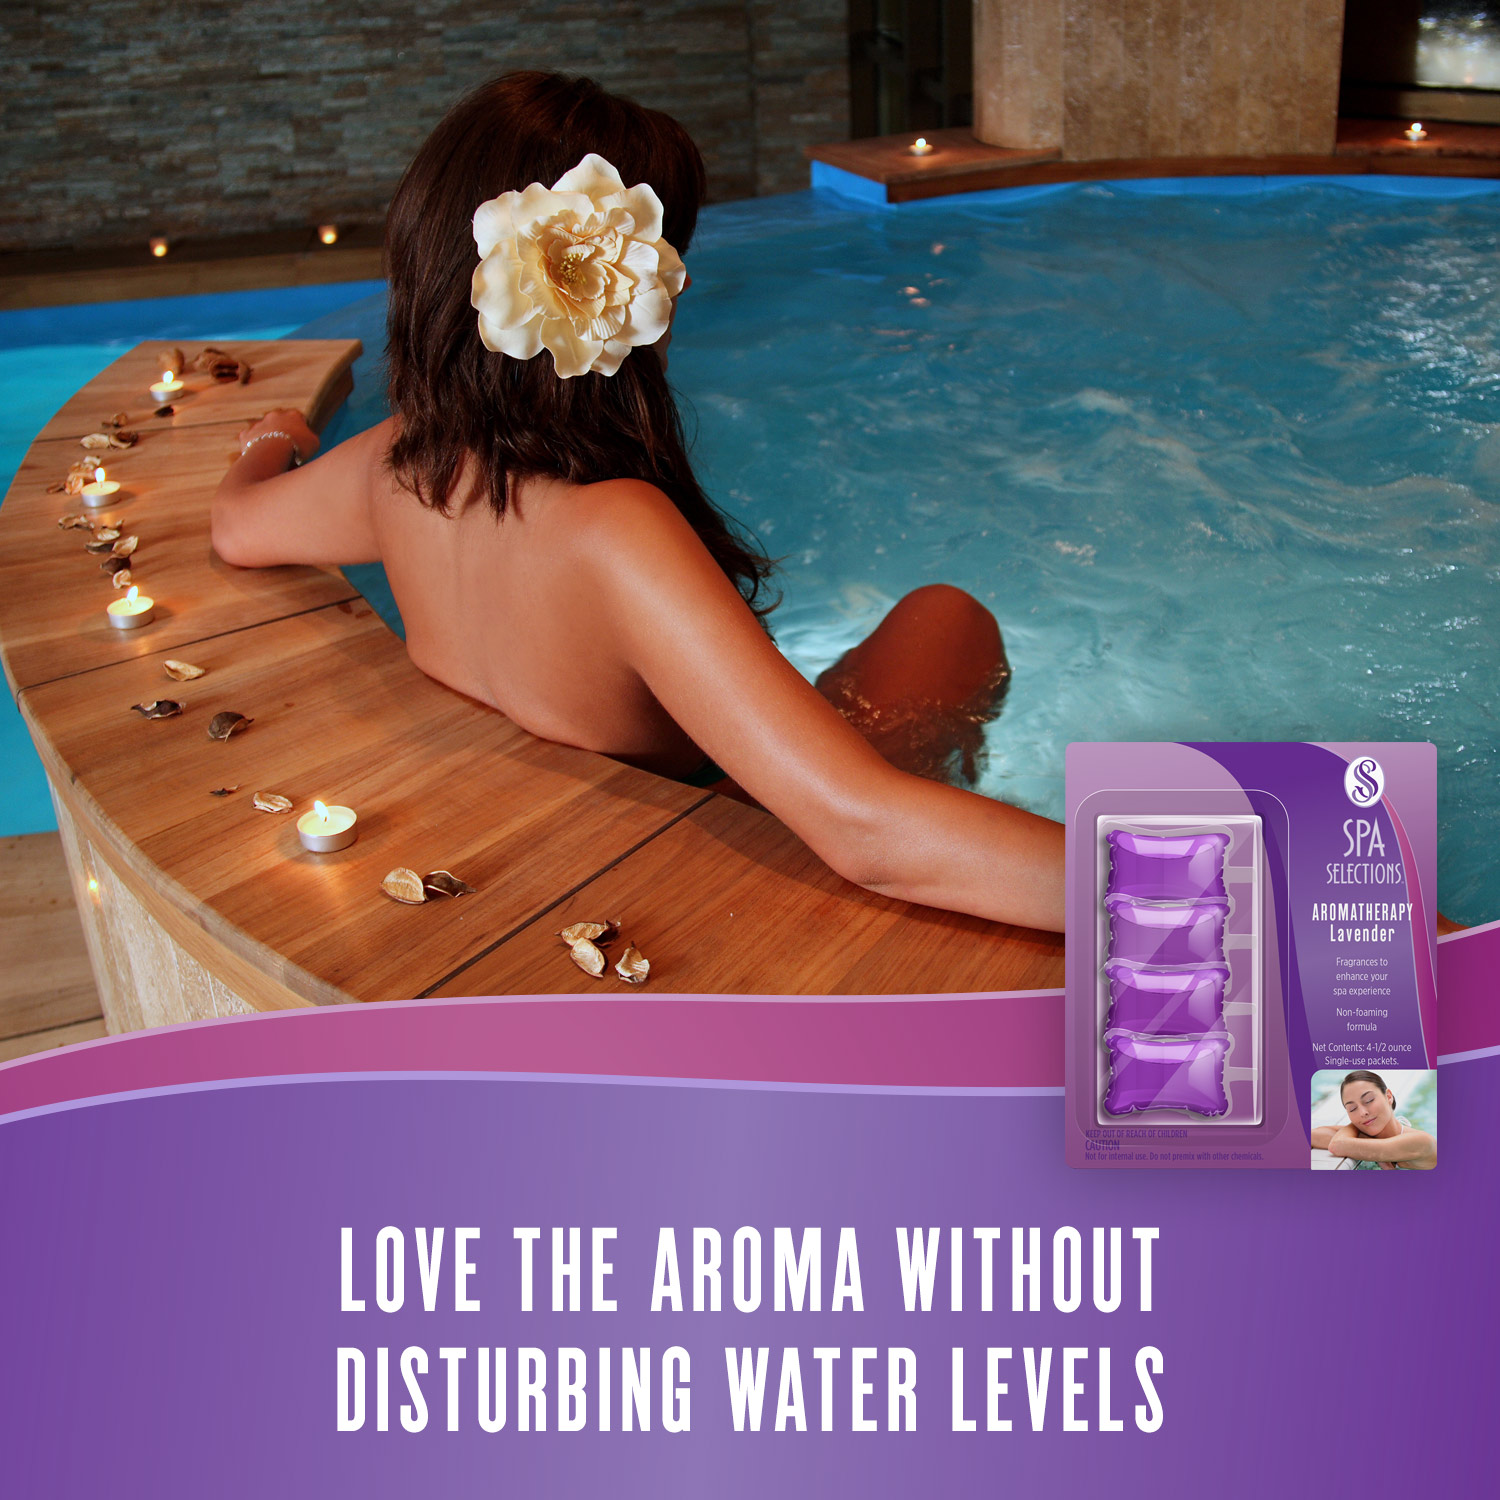 Woman enjoying an indoor spa with wooden siding and Spa Selections lavender aromatherapy. Love the aroma without disturbing water levels.